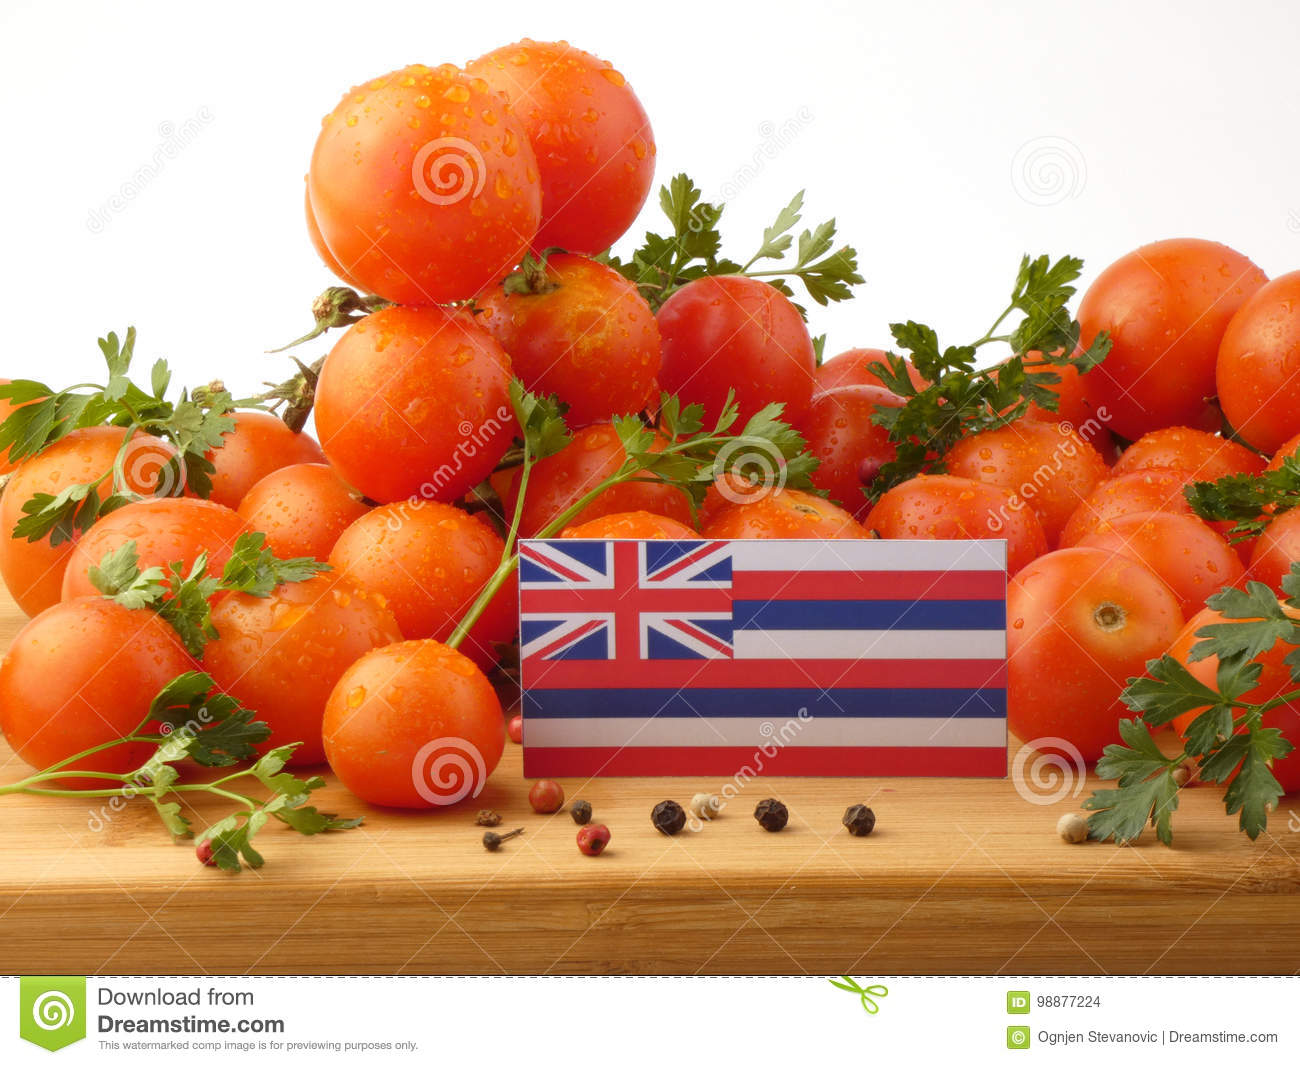 Hawaii flag on a wooden panel with tomatoes isolated on a white